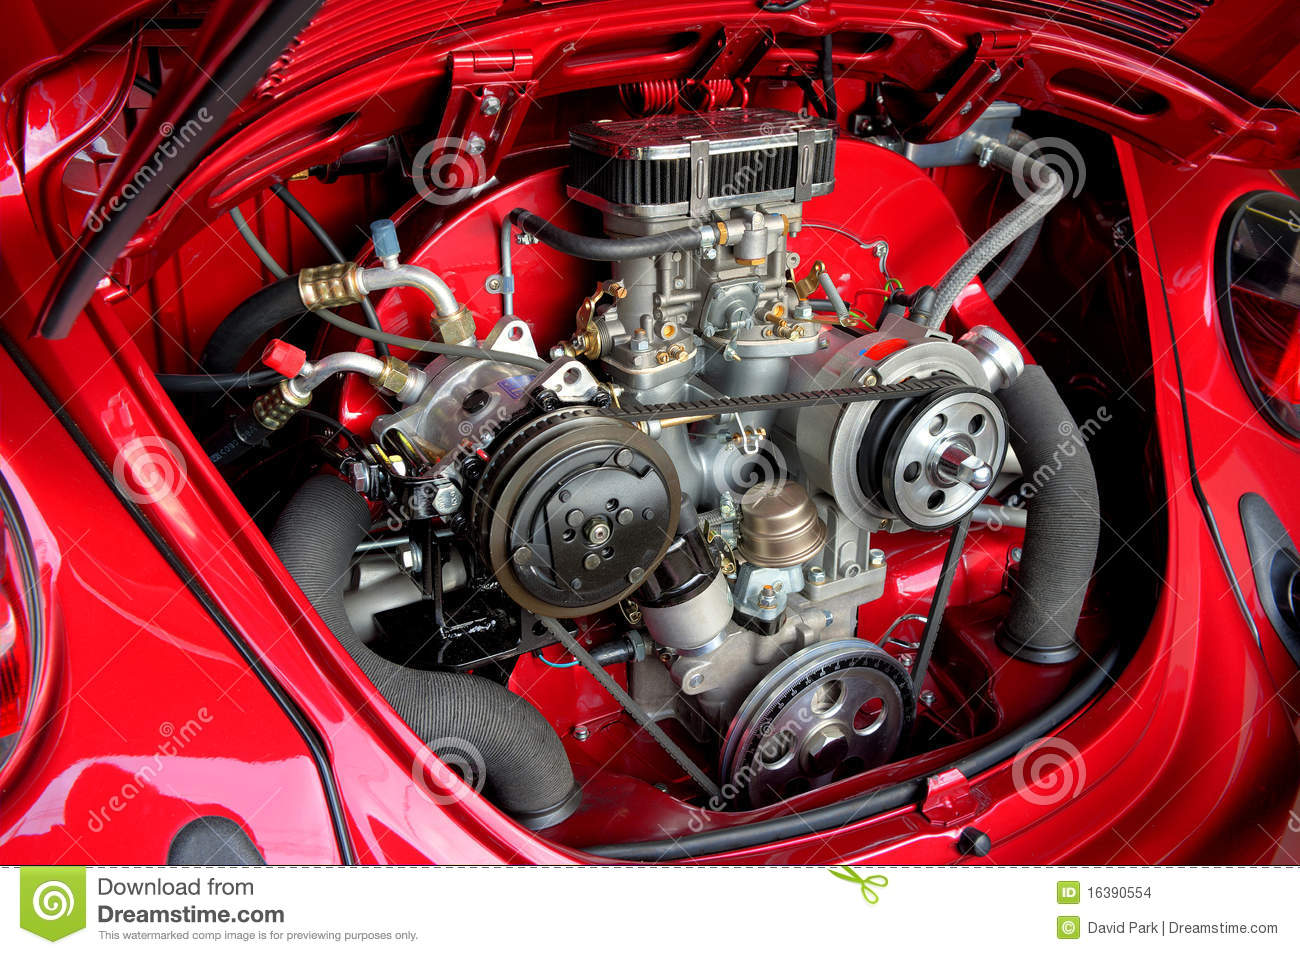 Viewtopic additionally Dodge Challenger Wiring Diagram likewise Relays likewise Tech articles in addition Viewtopic. on 1972 vw beetle engine diagram